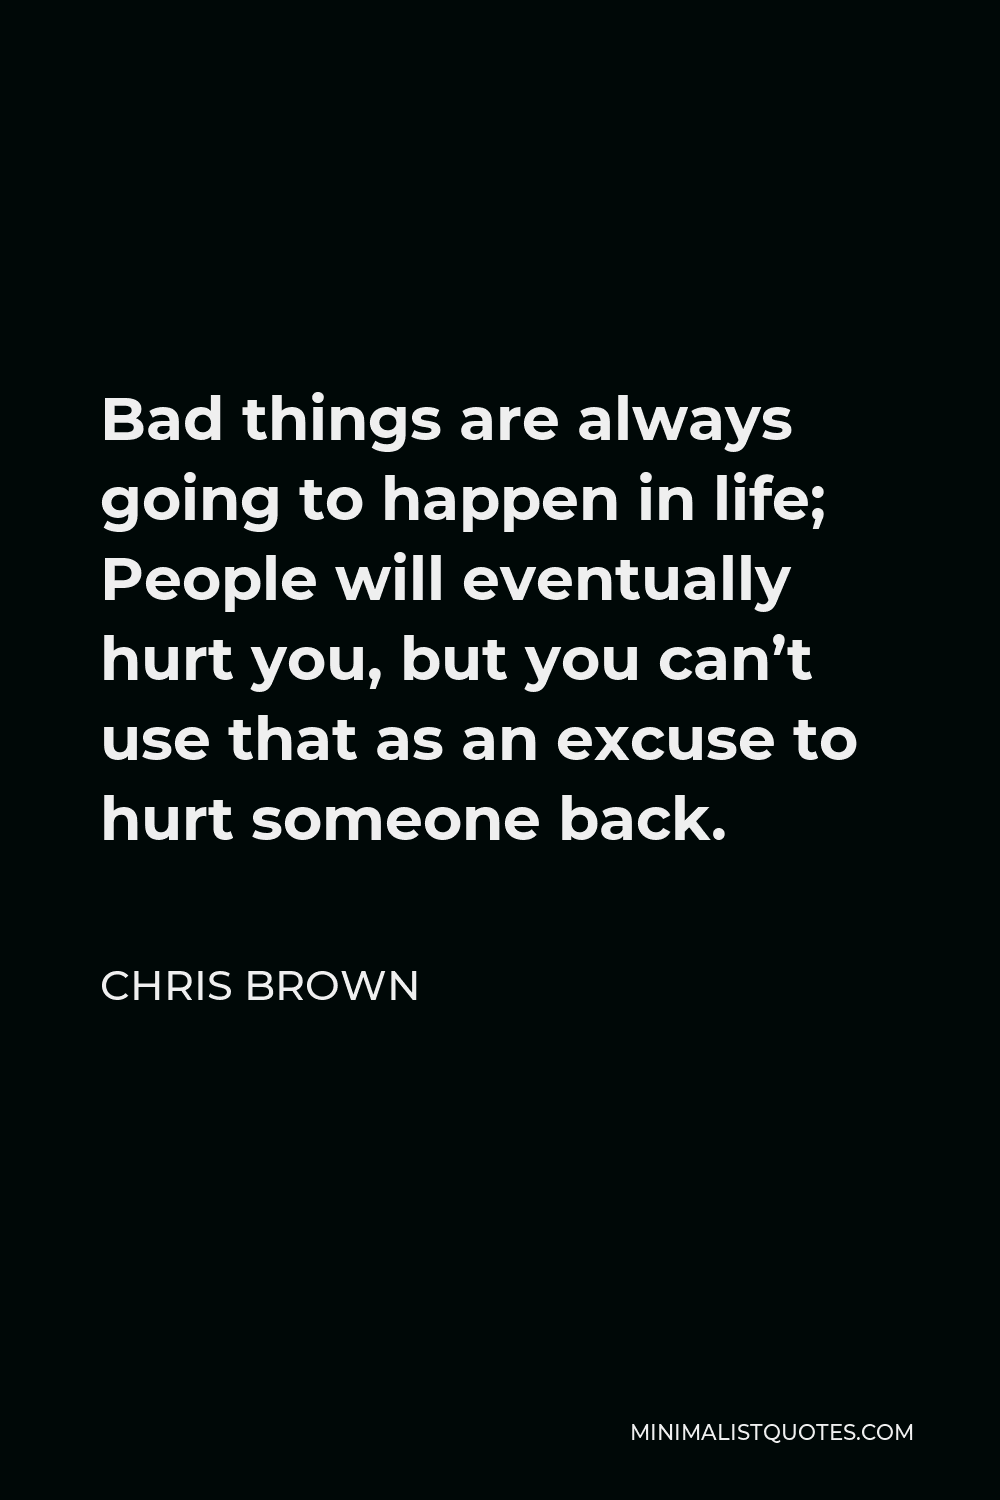 Chris Brown Quote - Bad things are always going to happen in life; People will eventually hurt you, but you can't use that as an excuse to hurt someone back.